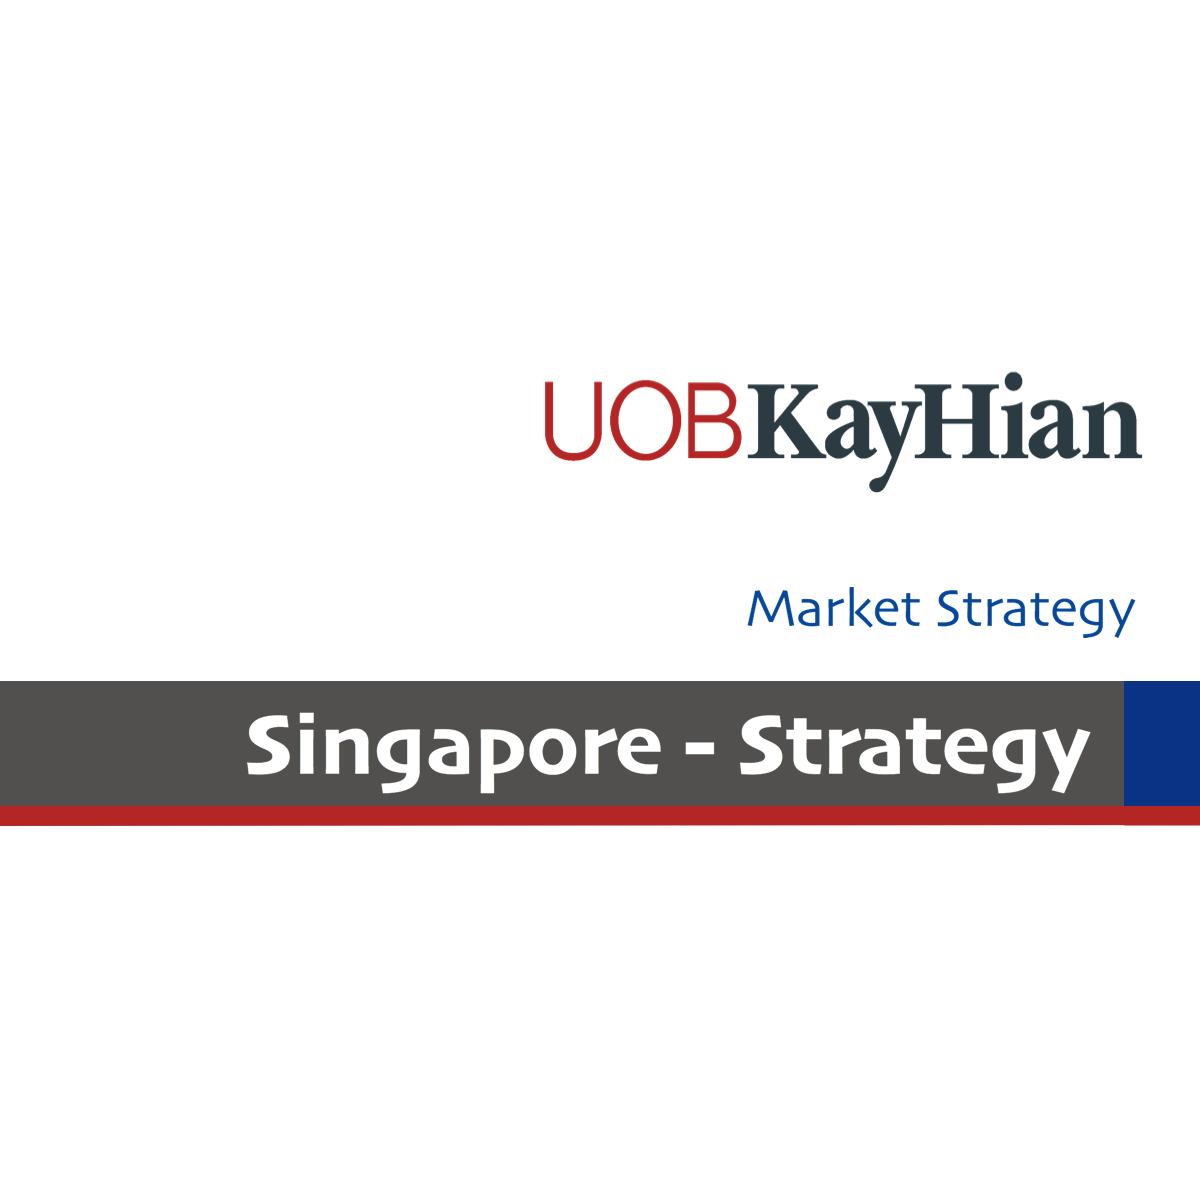 Singapore Stock Strategy - UOB Kay Hian 2018-05-23: 1q18 Results Wrap-up ~ In Line; Good Earnings Momentum